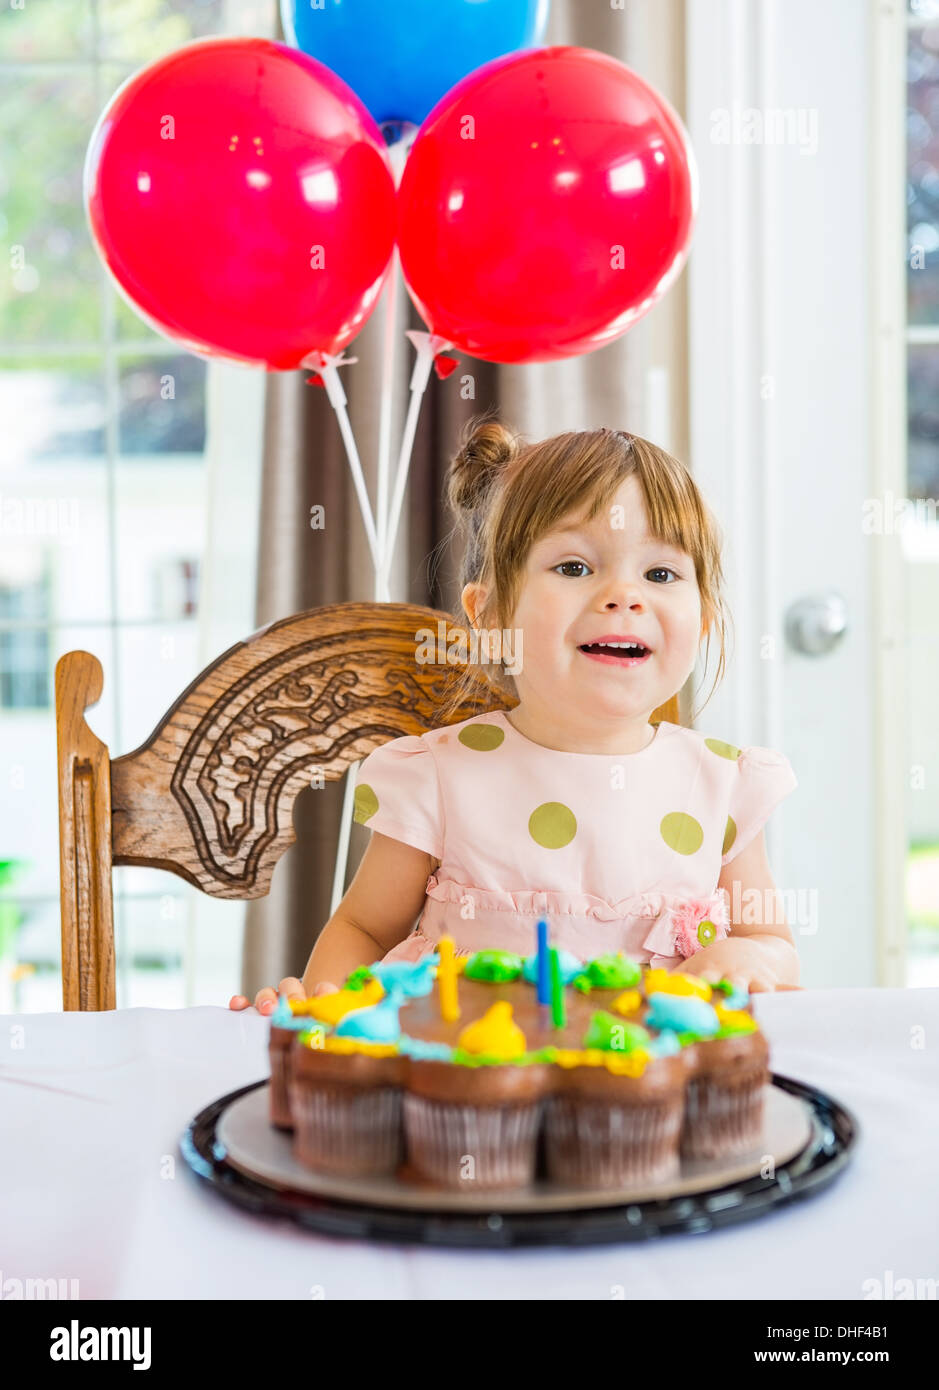 Girl Sitting In Front Of Cake At Home - Stock Image